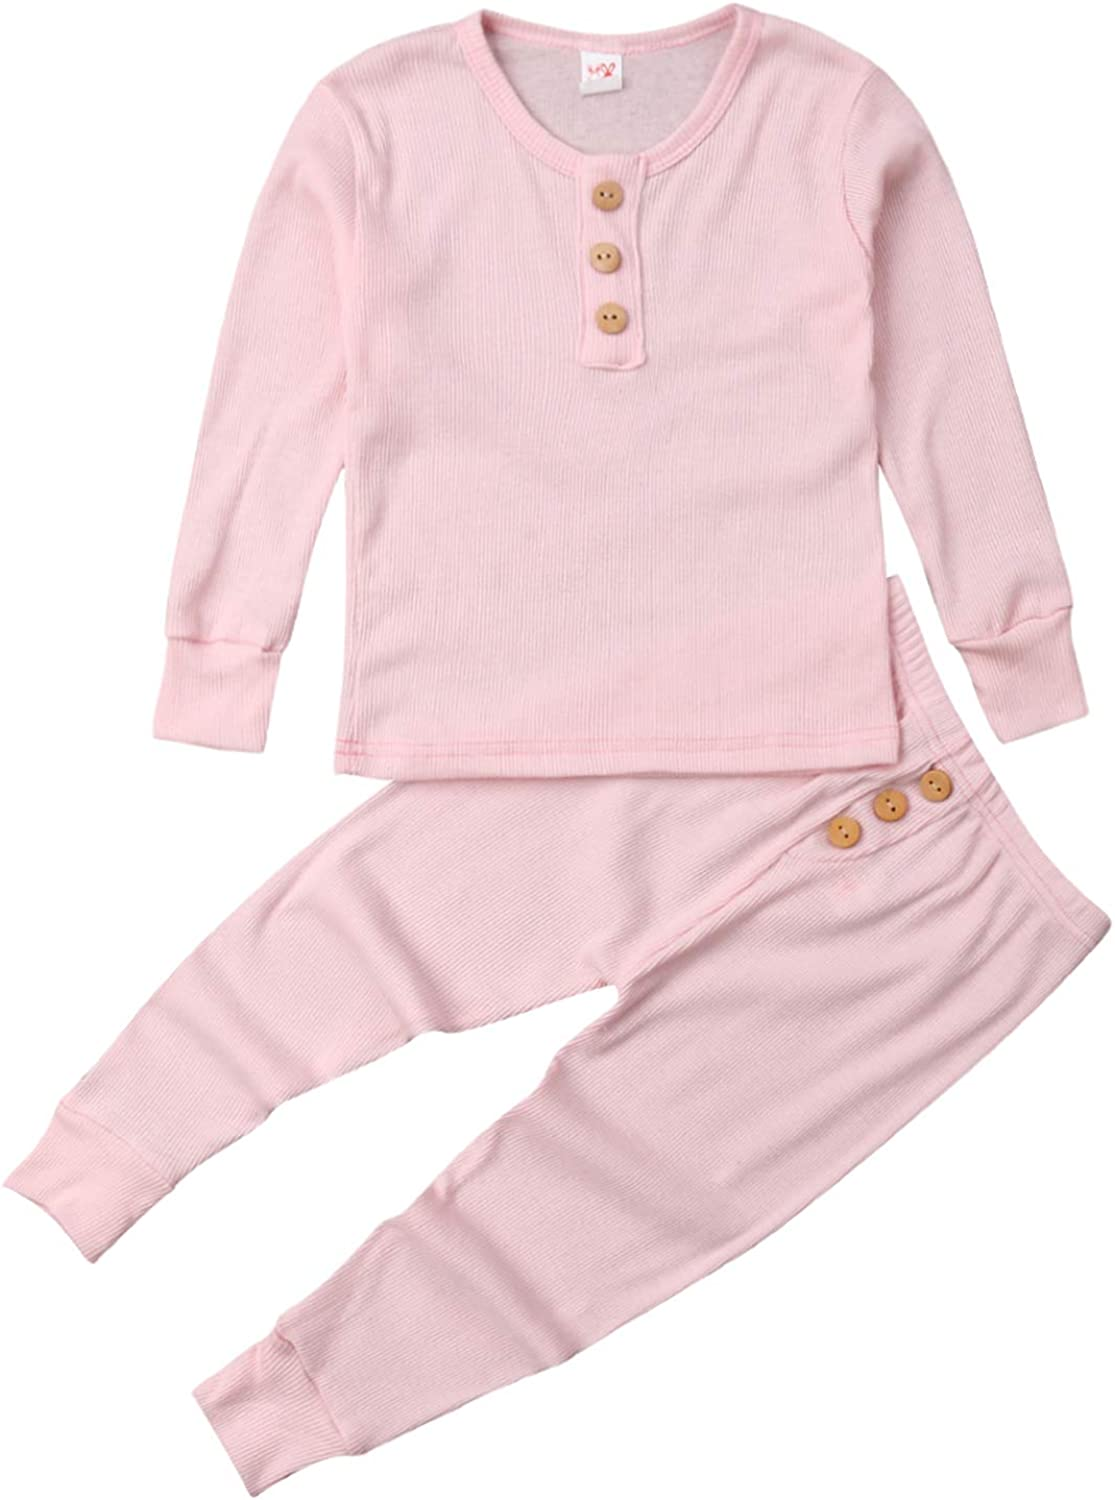 SEAL limited product Unisex Fixed price for sale Toddler Baby Snug-fit Pajamas Top Piece Set B Pants 2 and